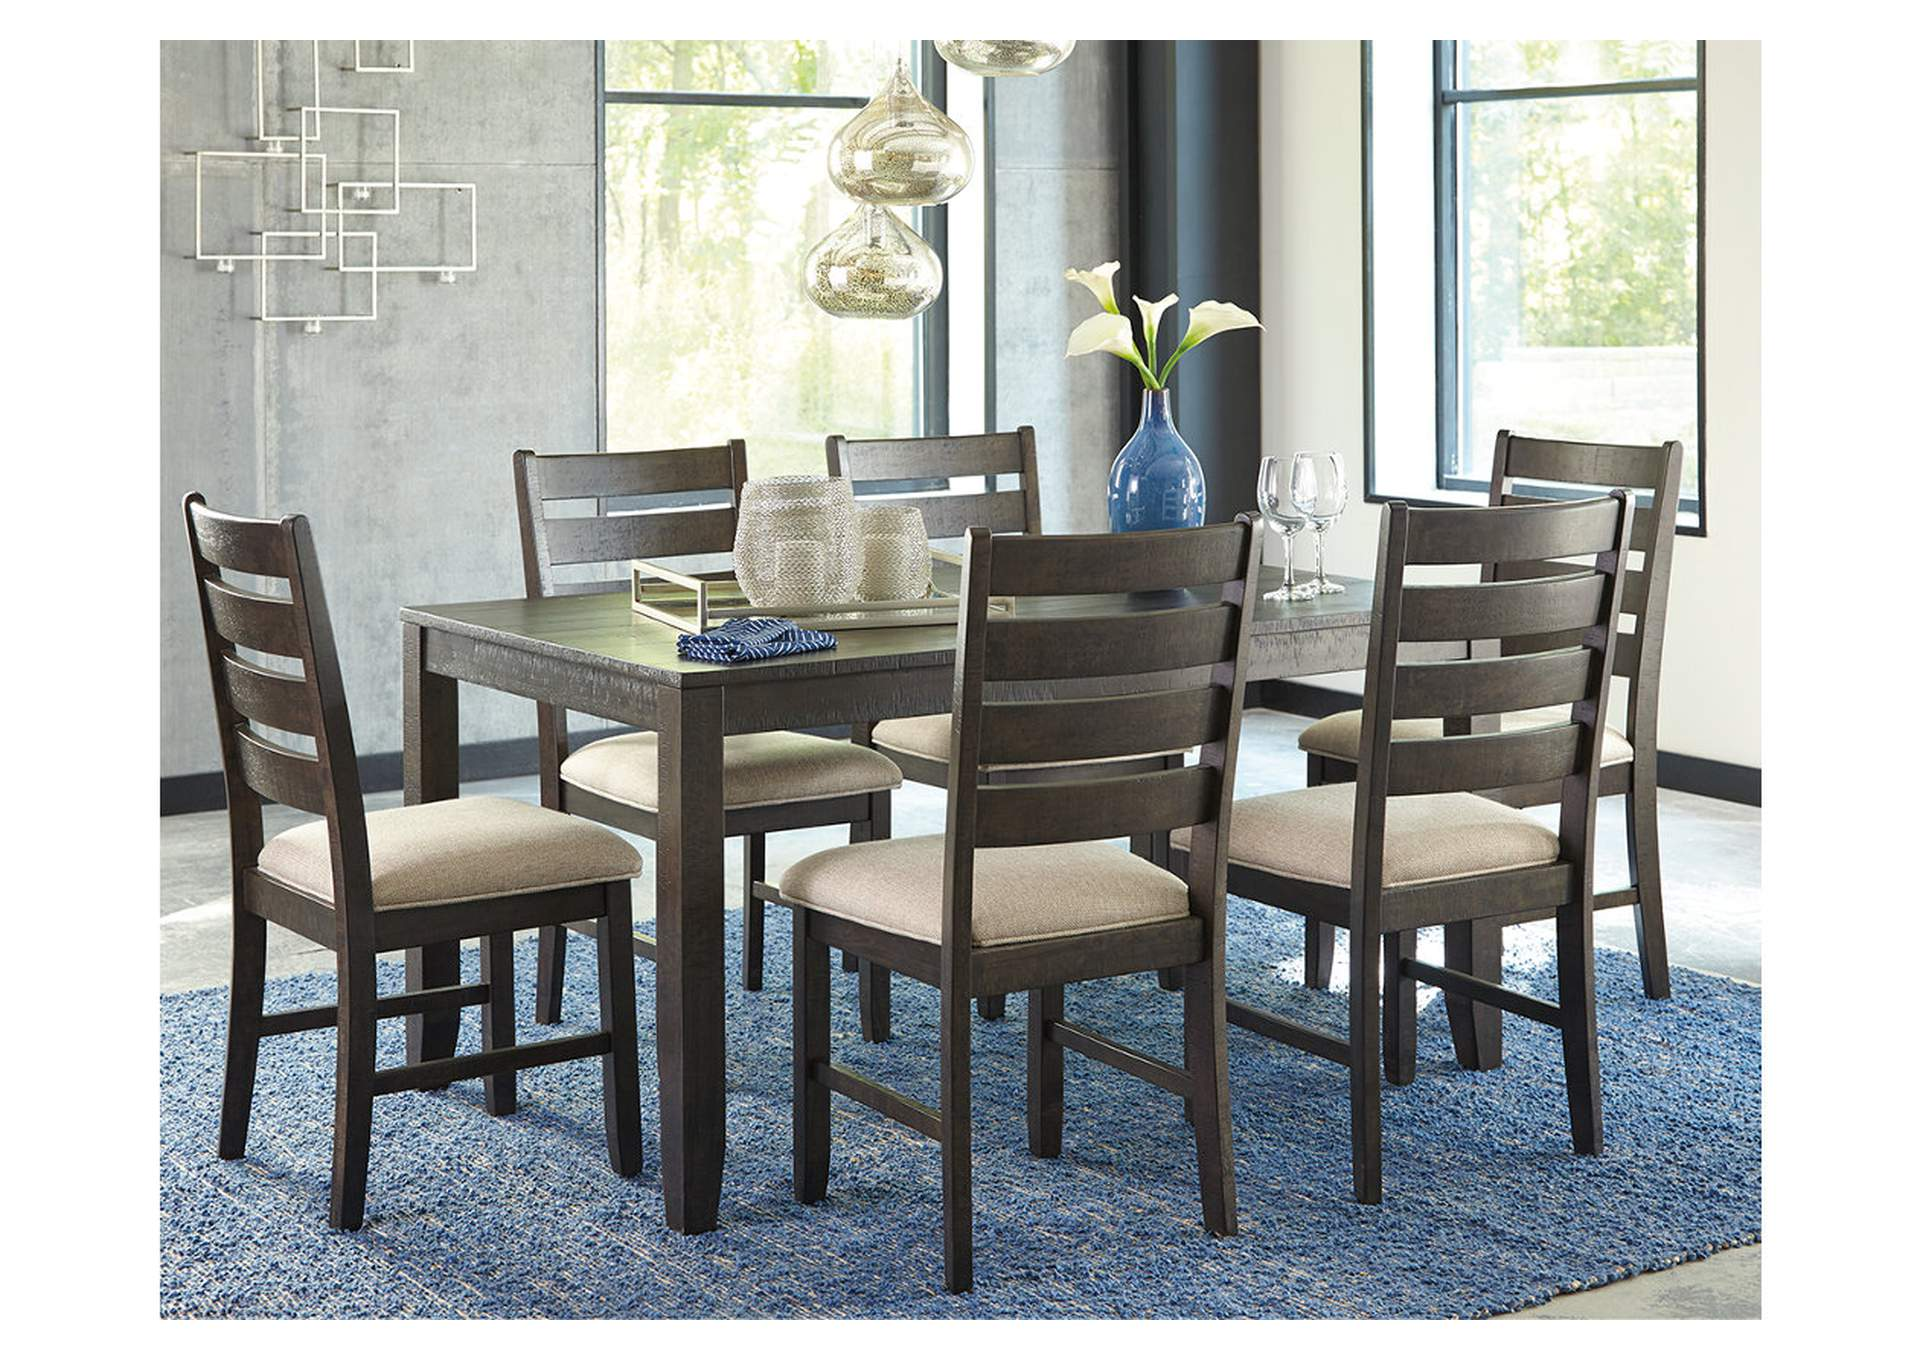 Rokane Brown 7-Piece Dining Room Table Set,Signature Design By Ashley